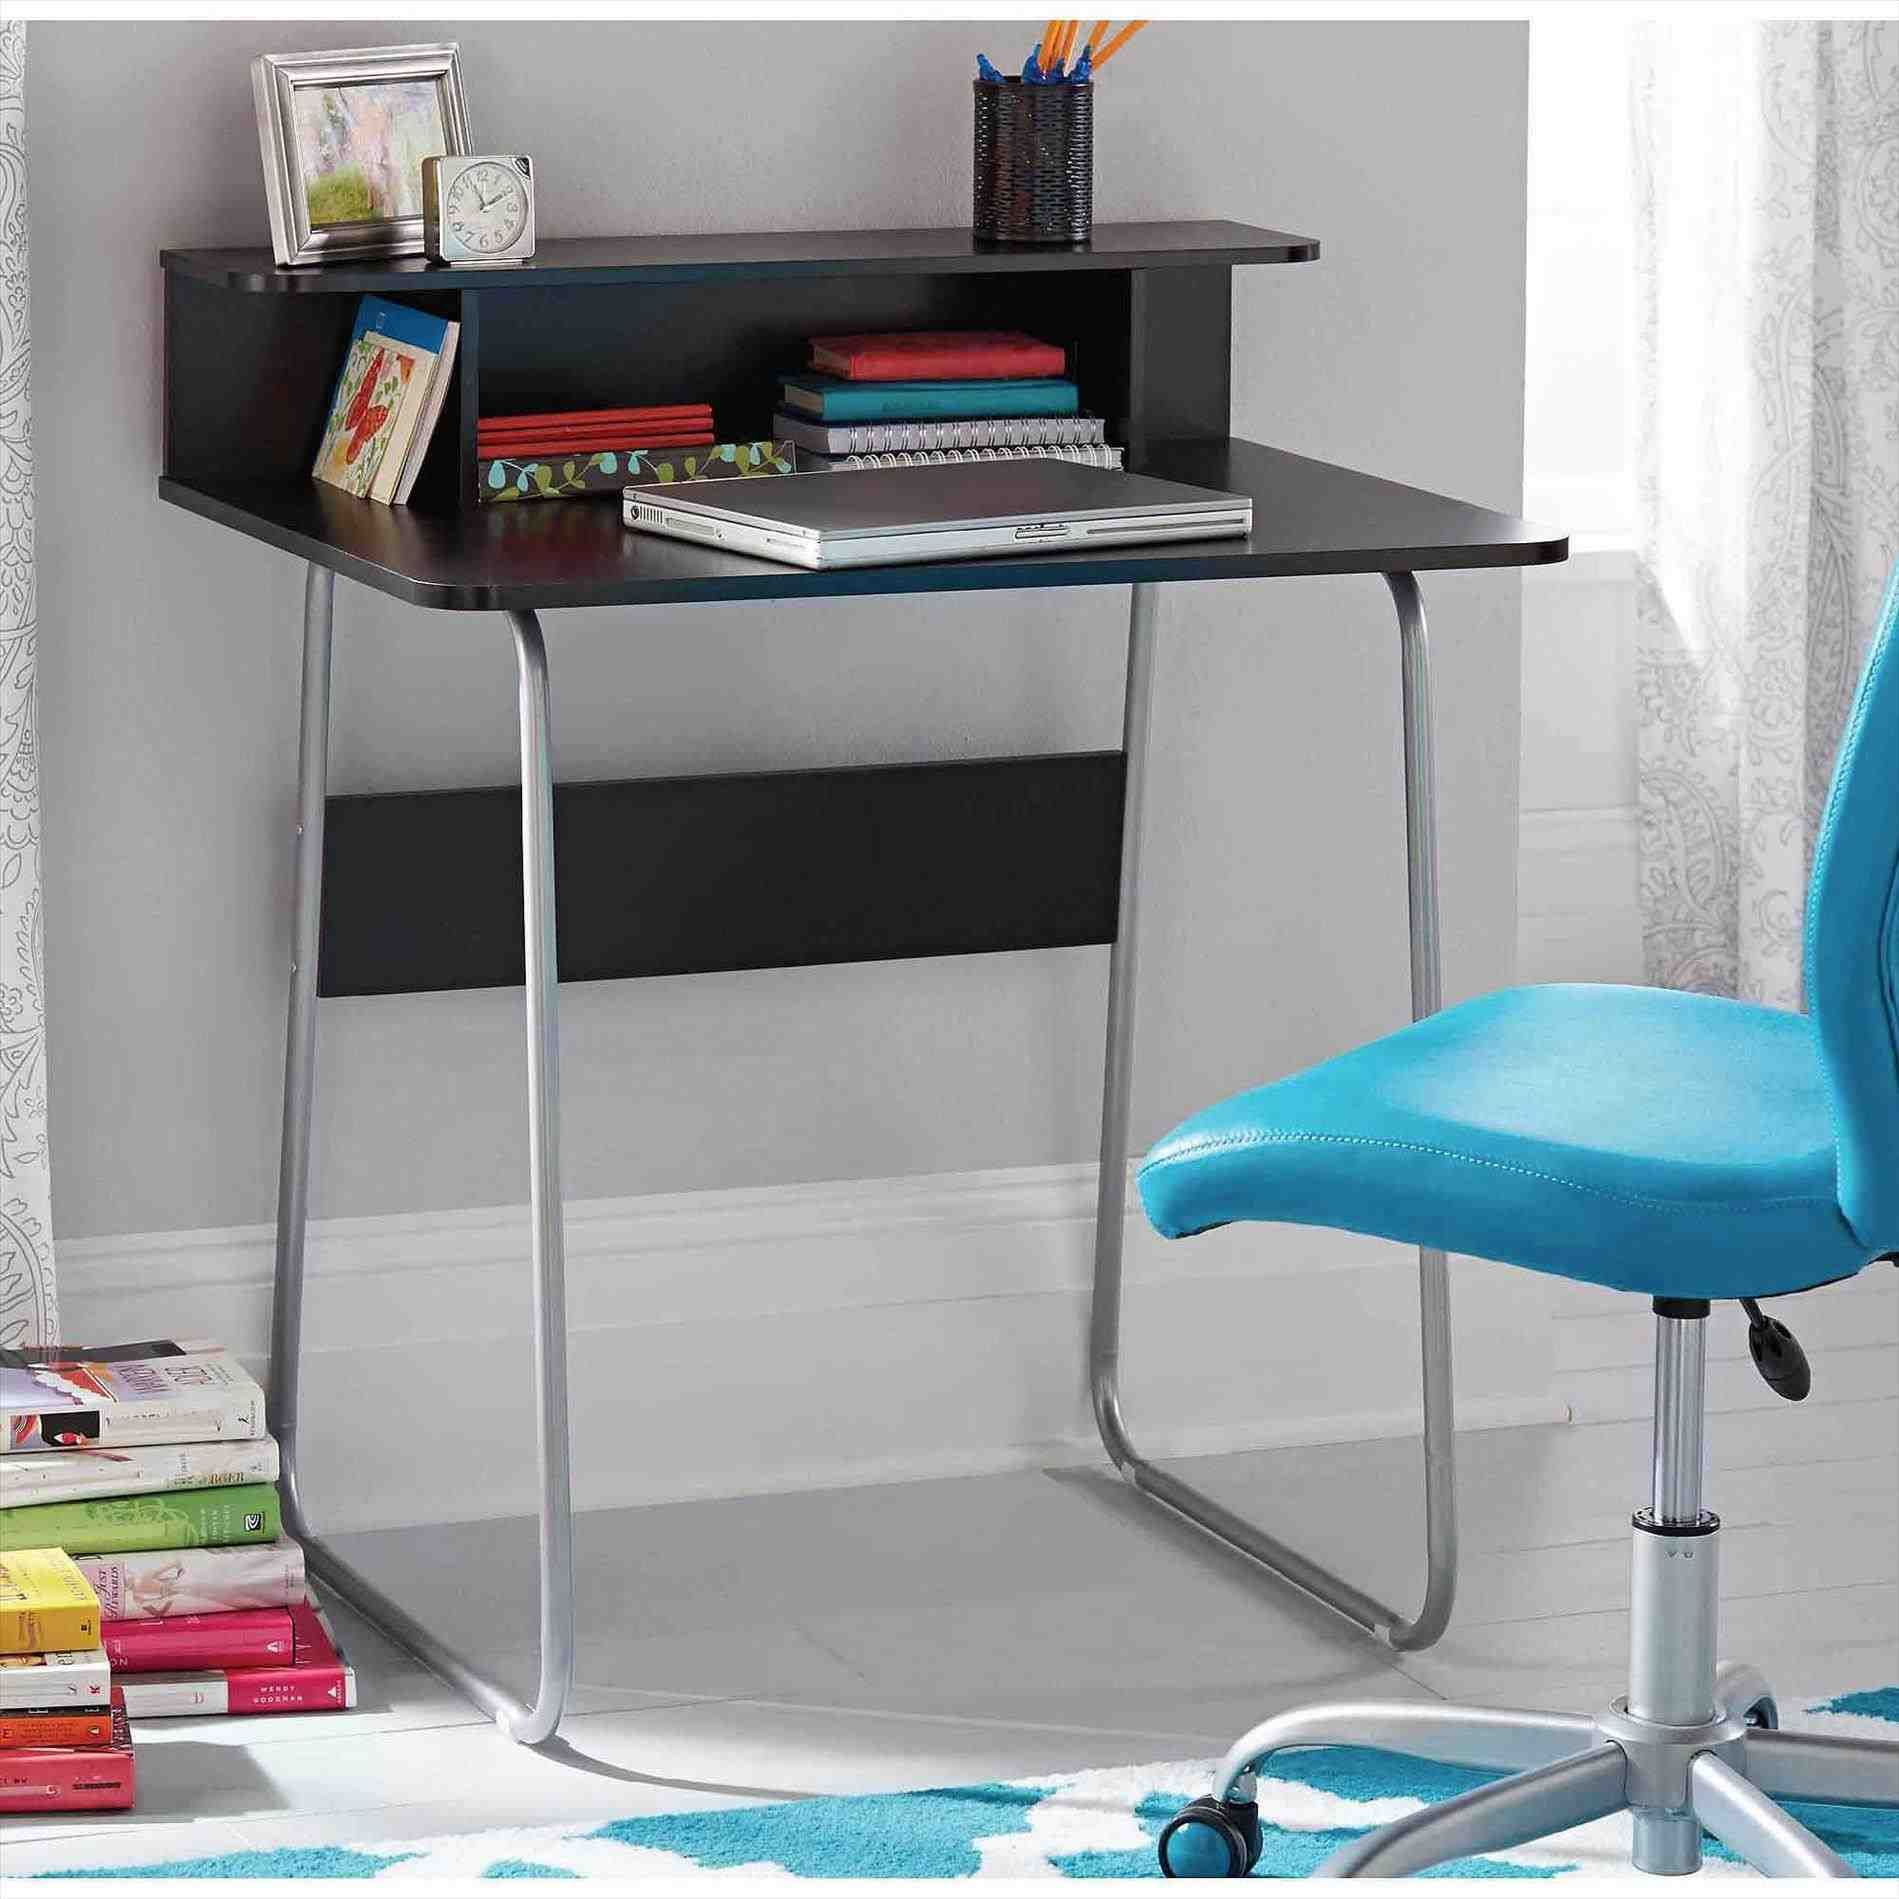 Cheap Office Chairs Walmart Full Size Of White Desk Chair Walmart Office Chairs At Wooden Wal Computer Desks For Home Kids Computer Desk Computer Desk Chair